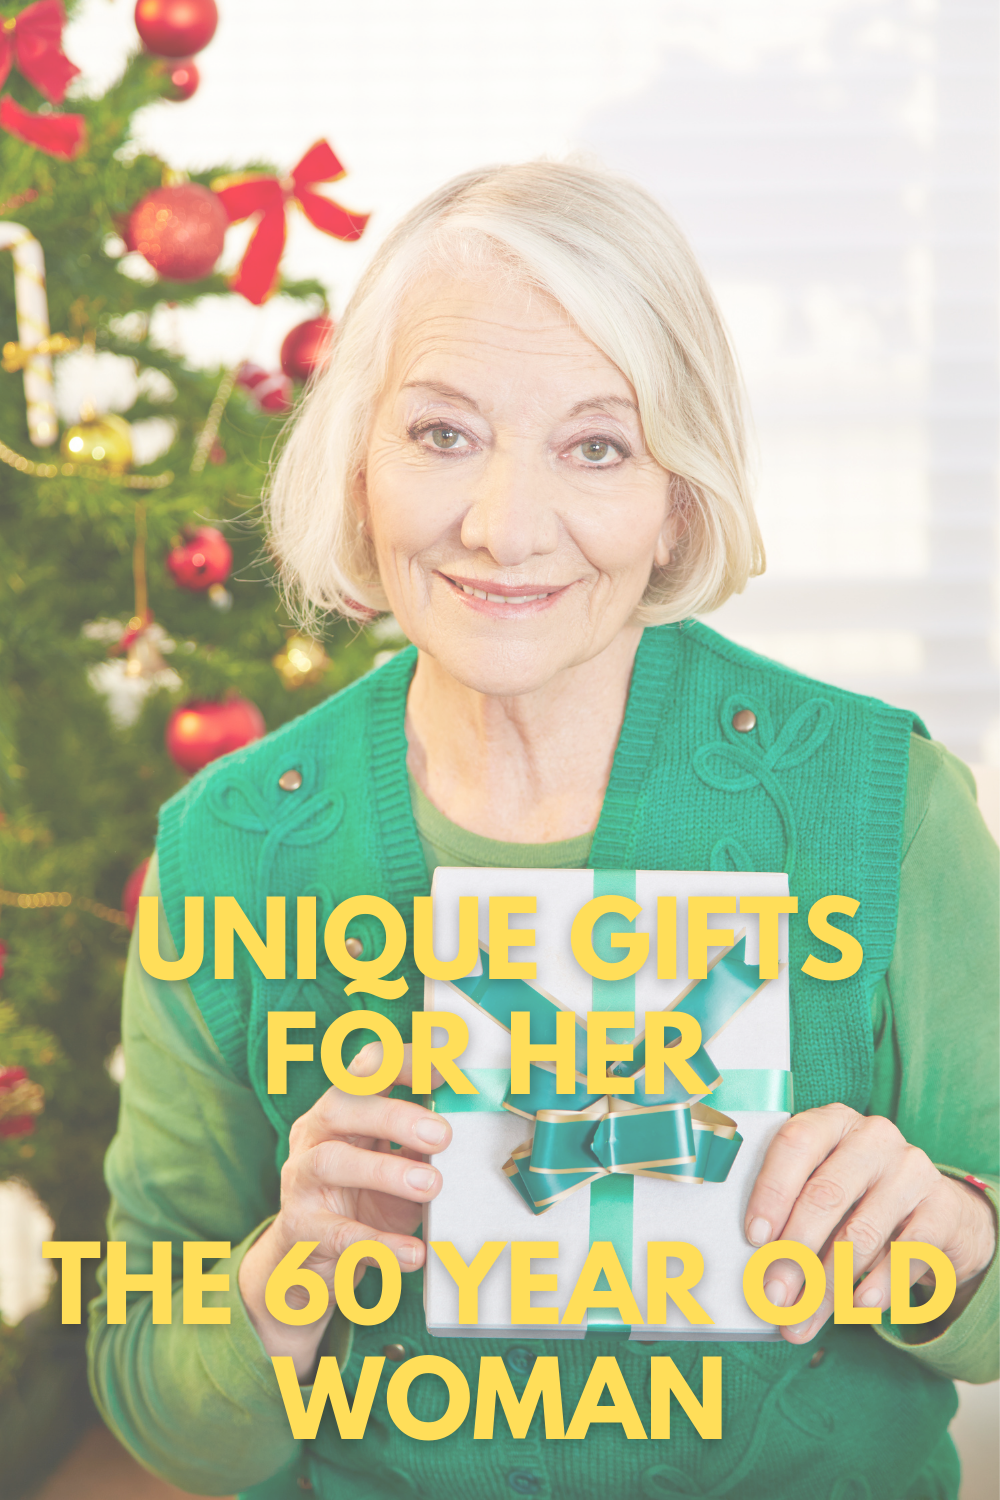 Unique Gifts for Her The 60 Year Old Woman